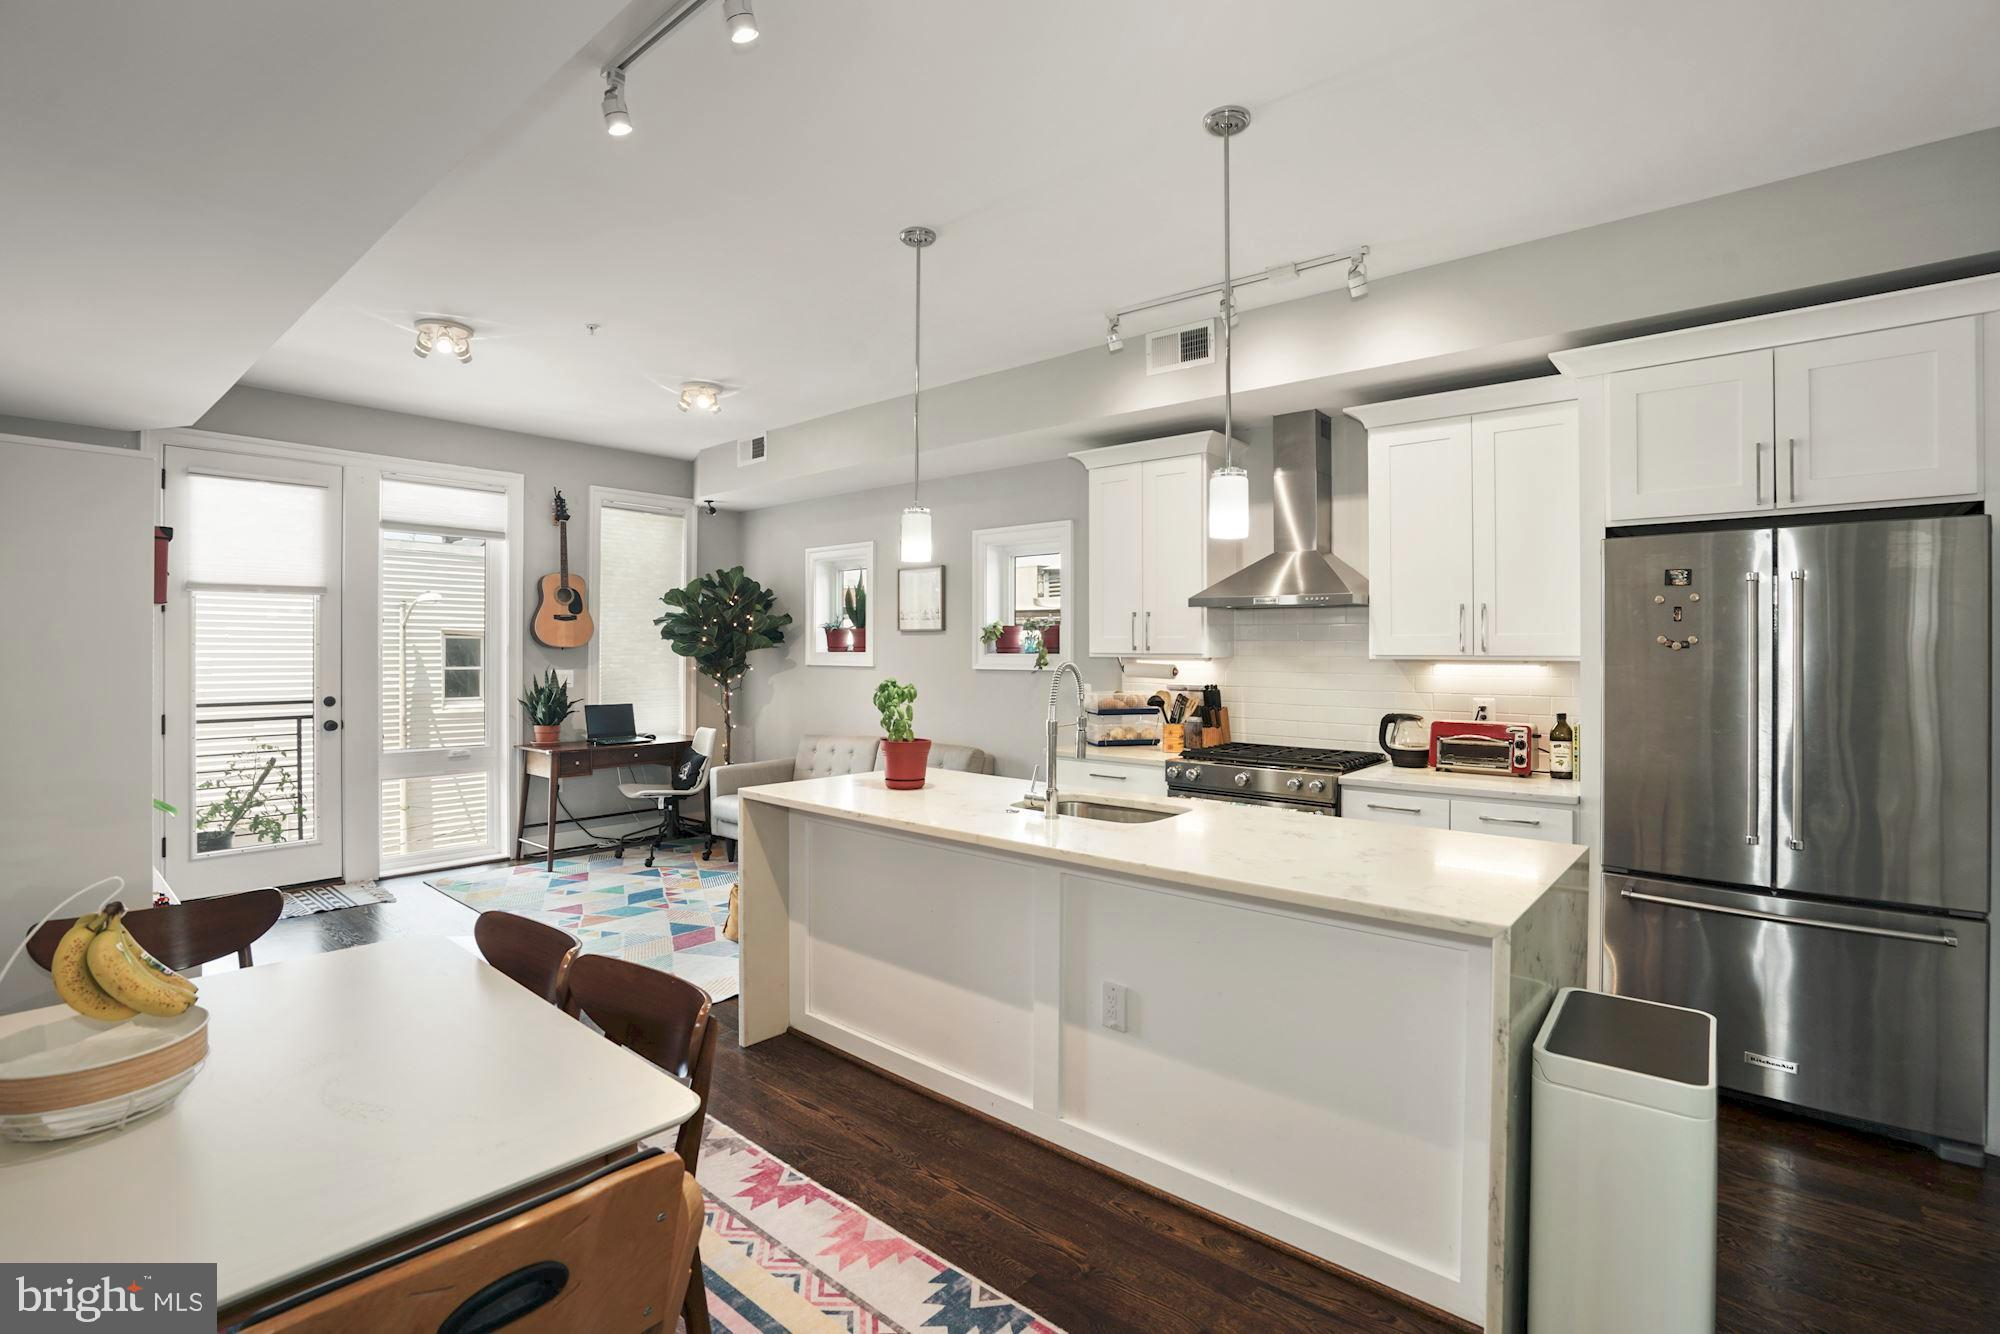 Light-filled, spacious 2bed/2 bath condo in a boutique building located in the heart of Petworth nei